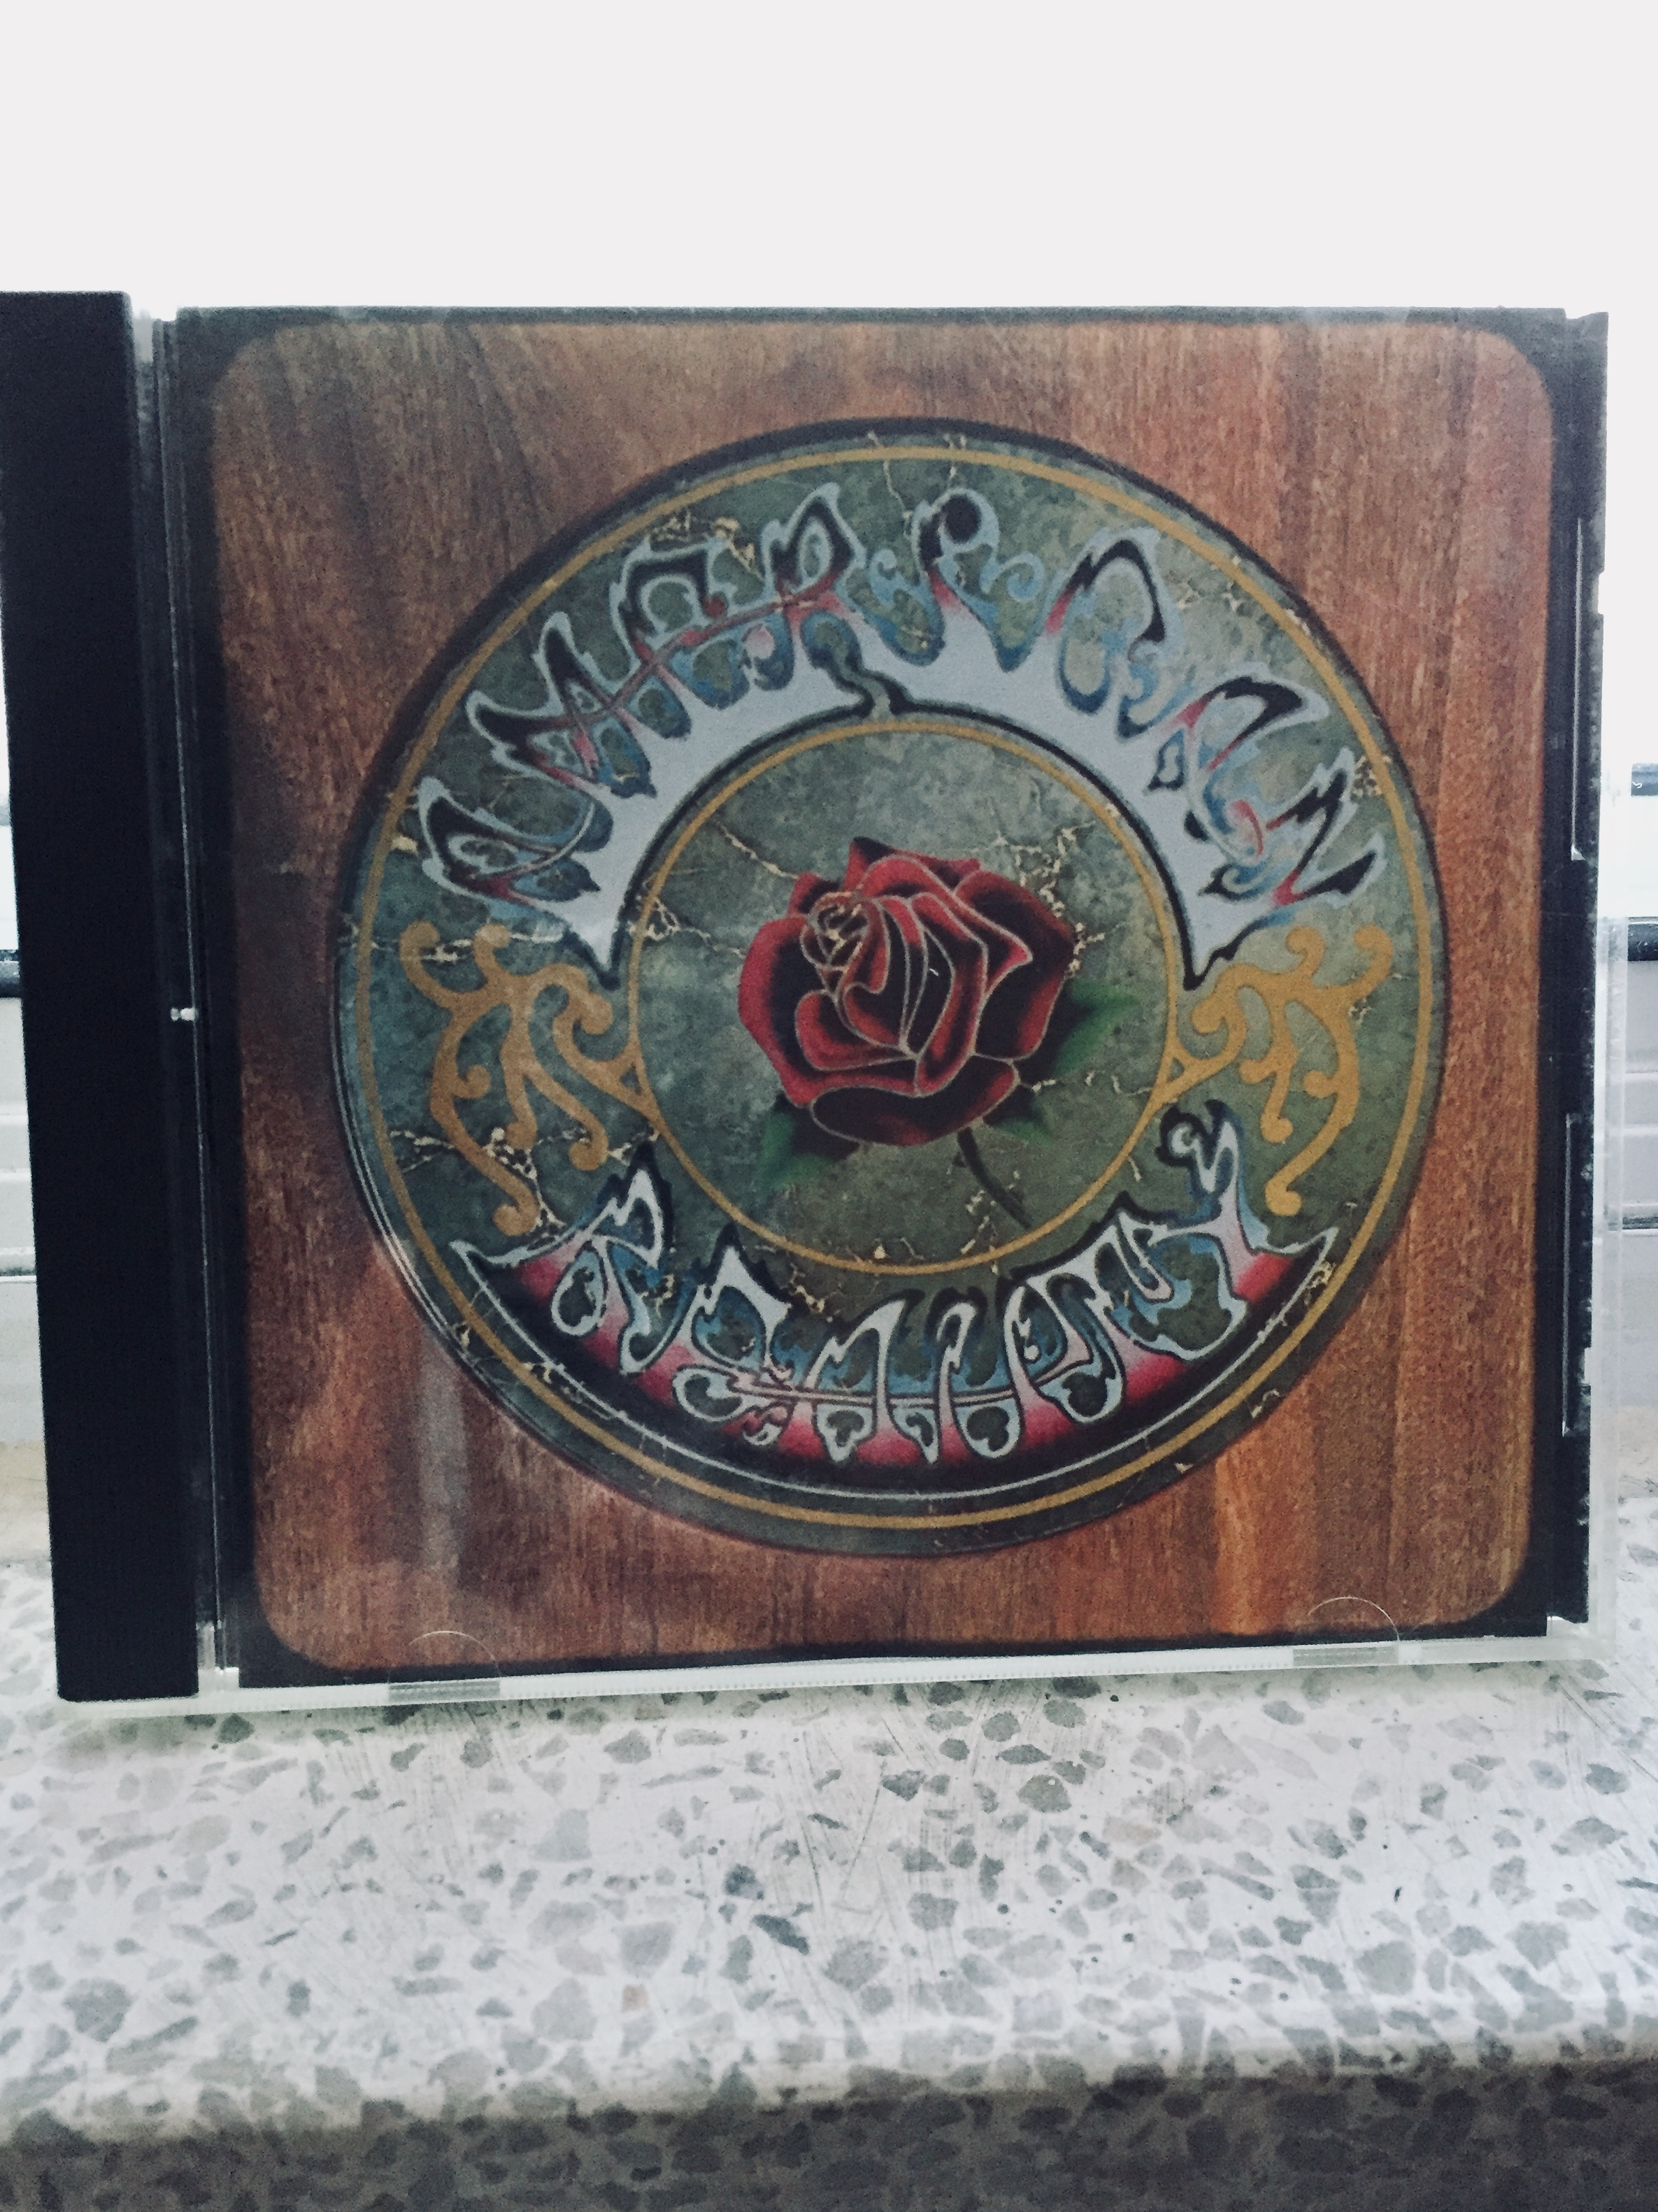 My dad's 'American Beauty' CD by the Grateful Dead. One of the best albums ever made